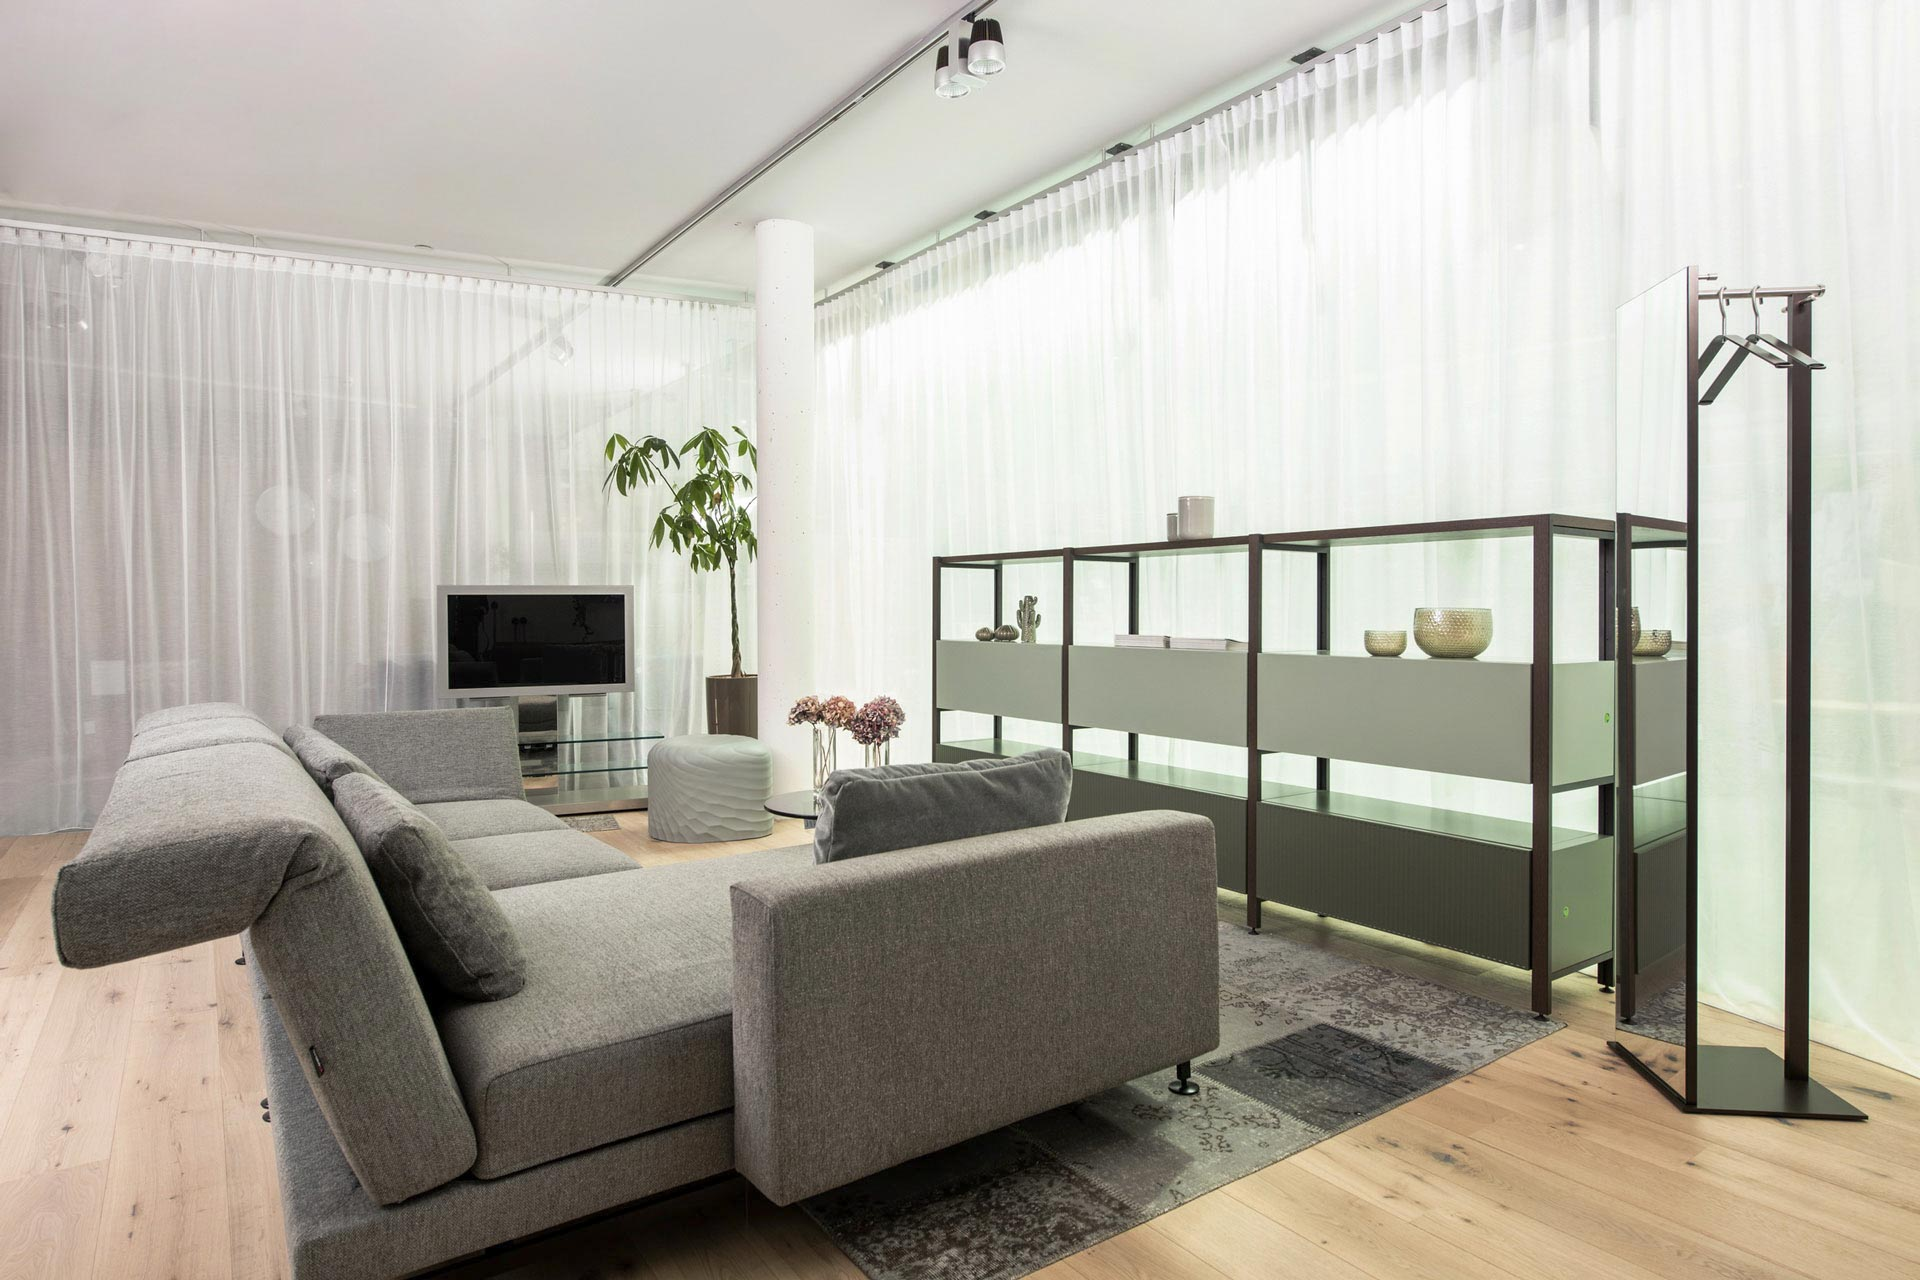 couchzone - Interior Design Innsbruck -Innenarchitektur